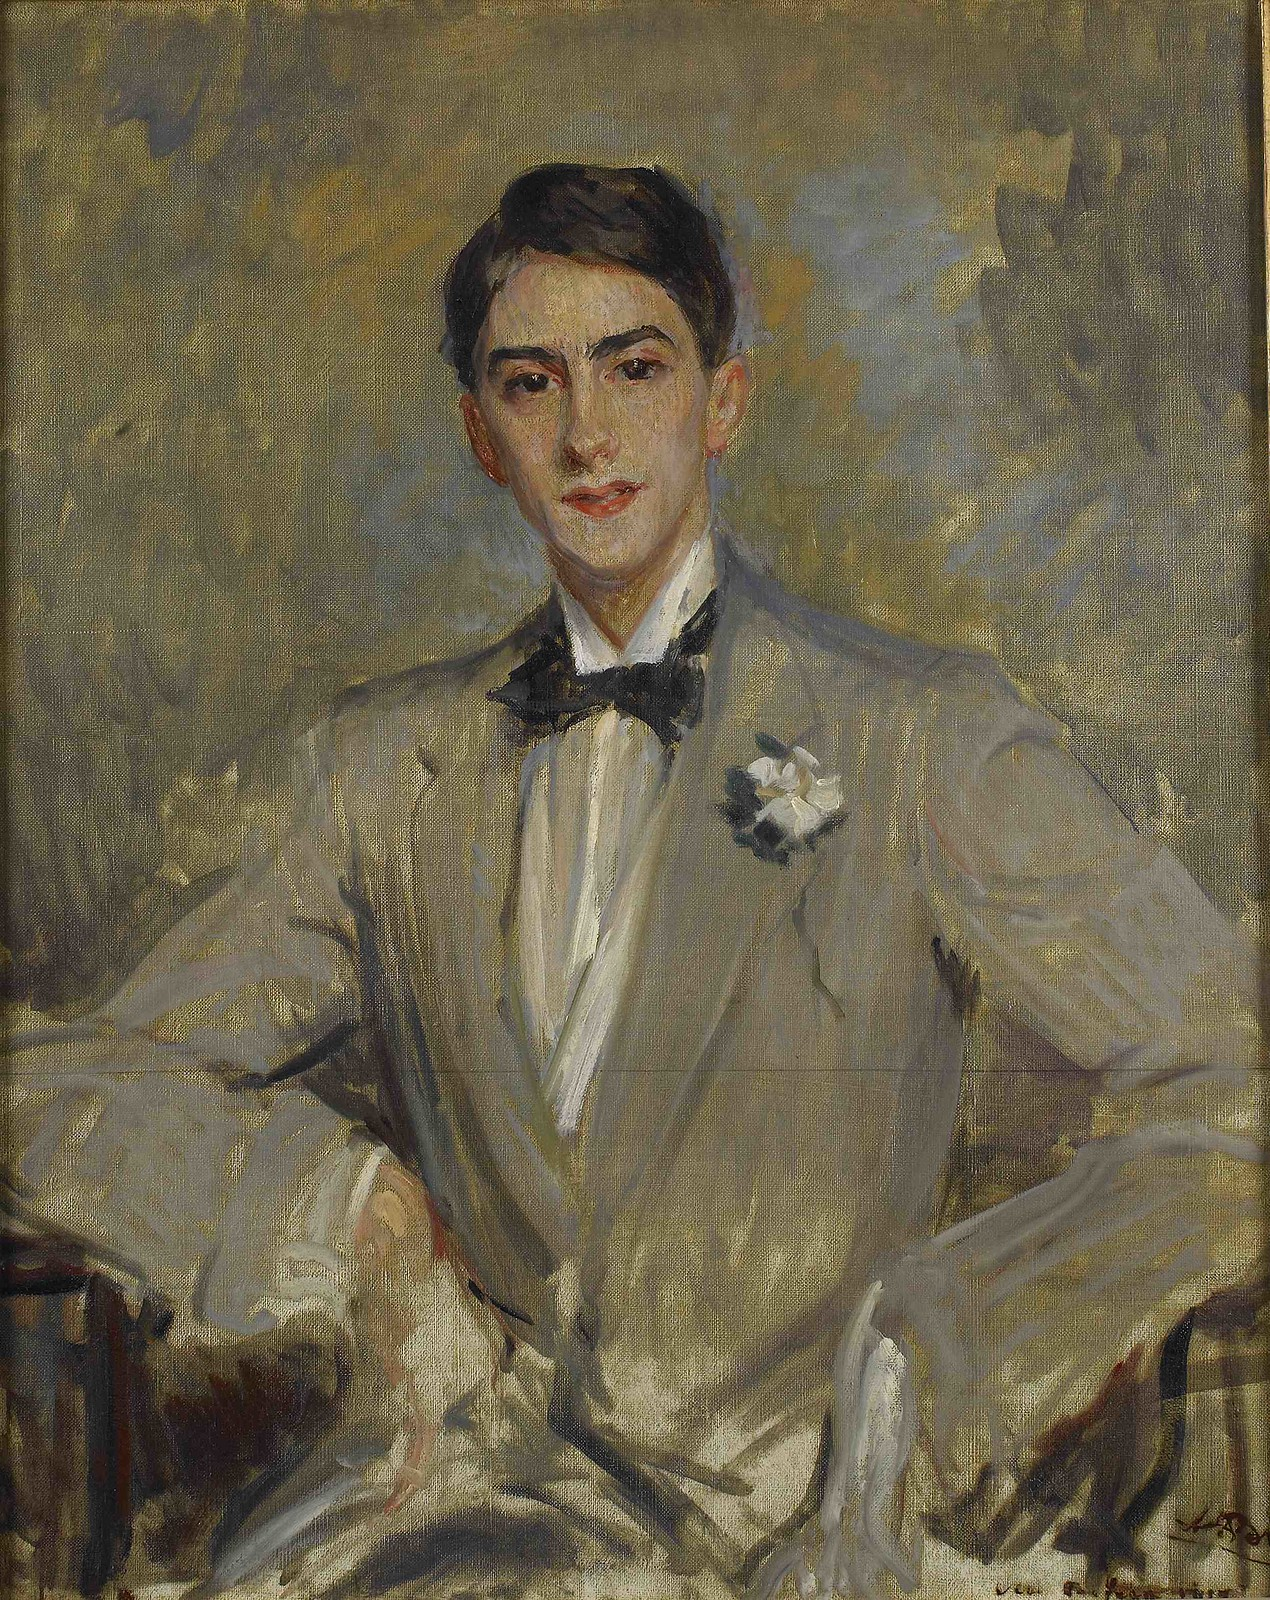 Portrait of Jean Cocteau by Jacques-Émile Blanche